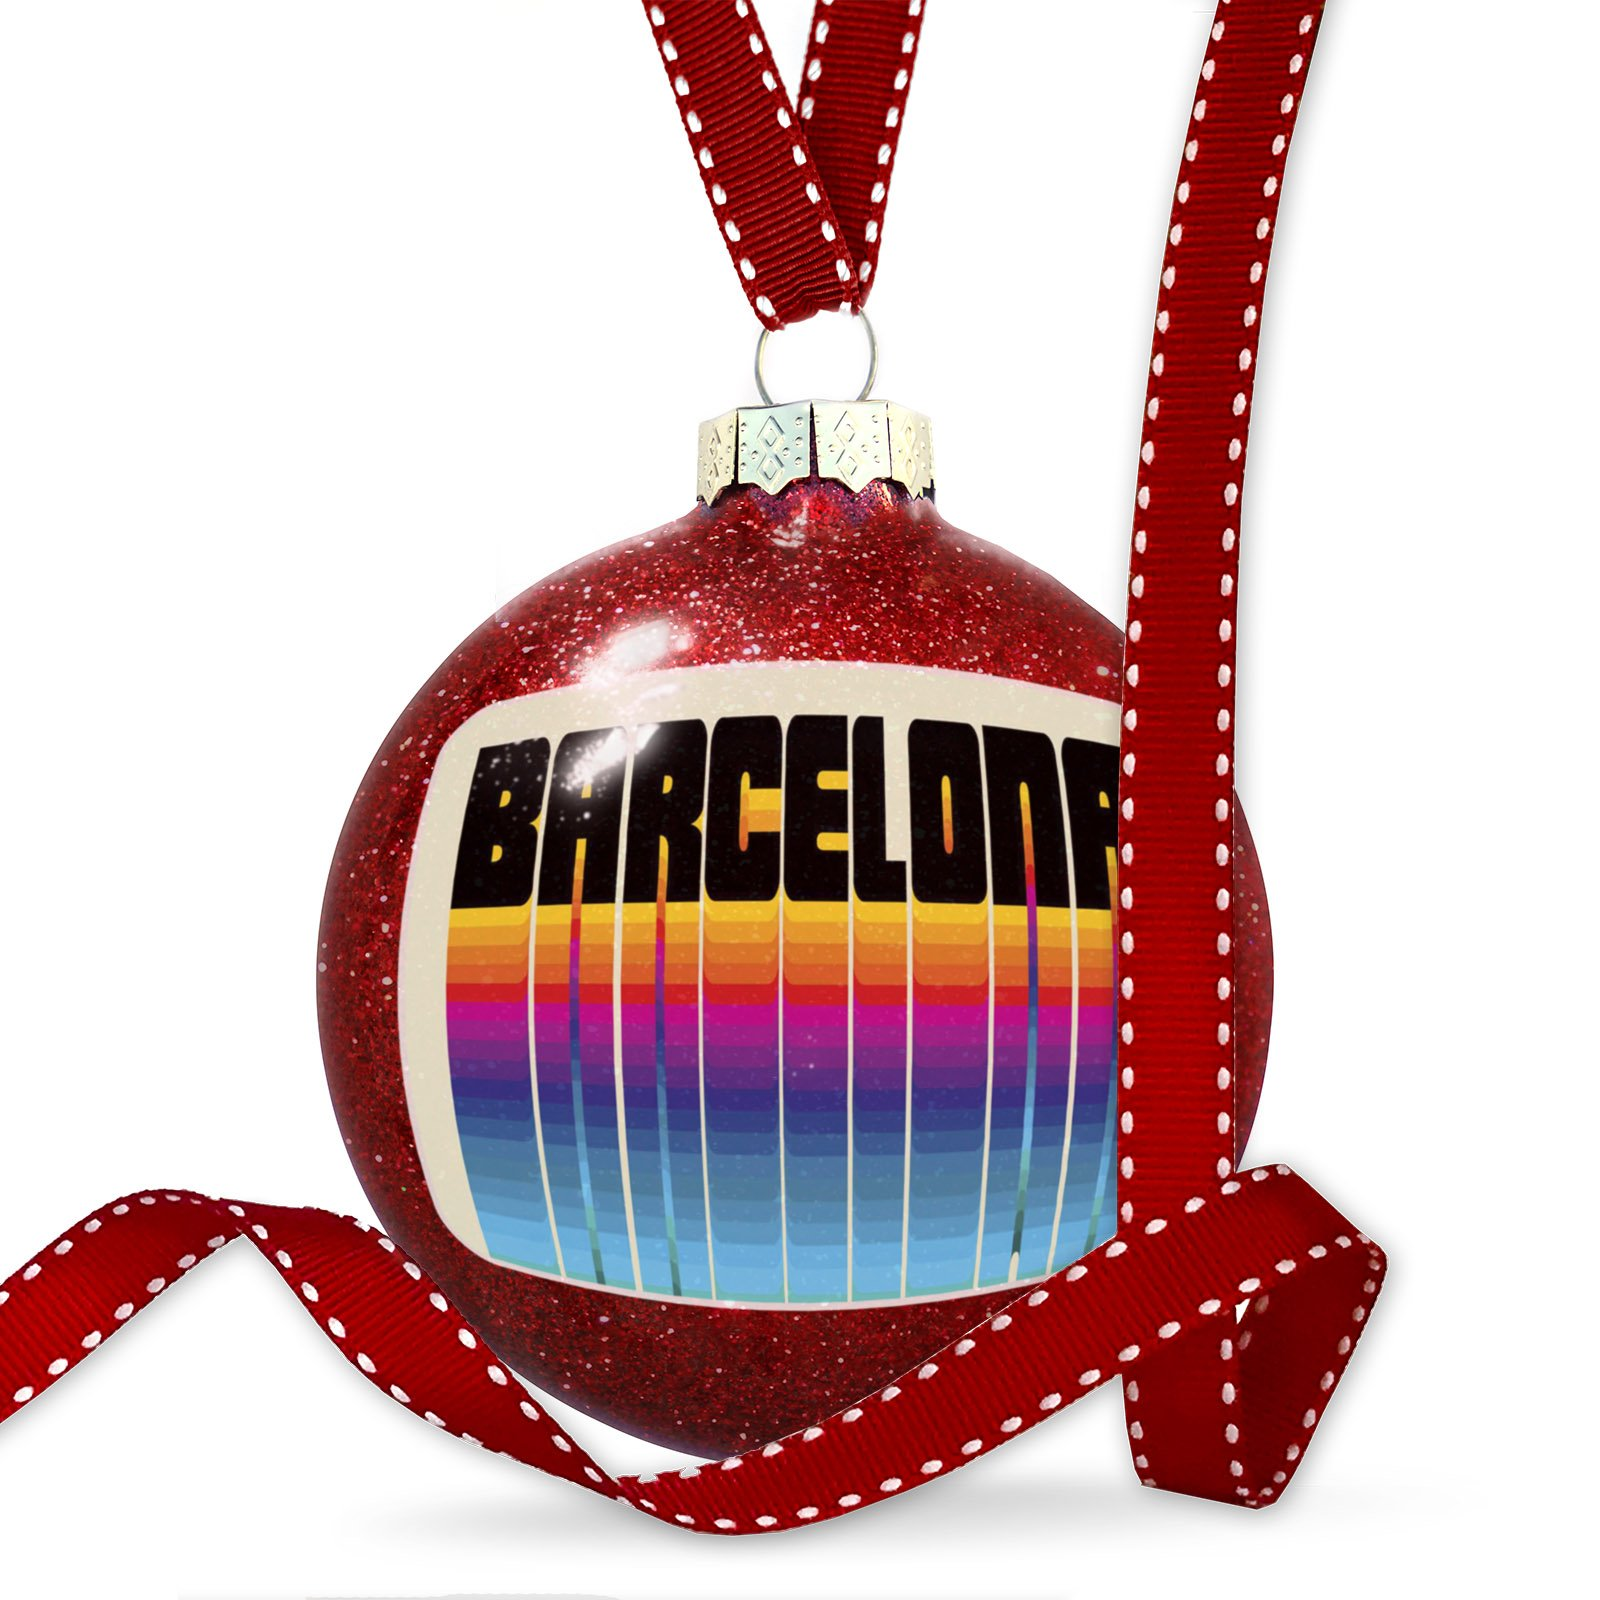 Christmas Decoration Retro Cites States Countries Barcelona Ornament by NEONBLOND (Image #1)